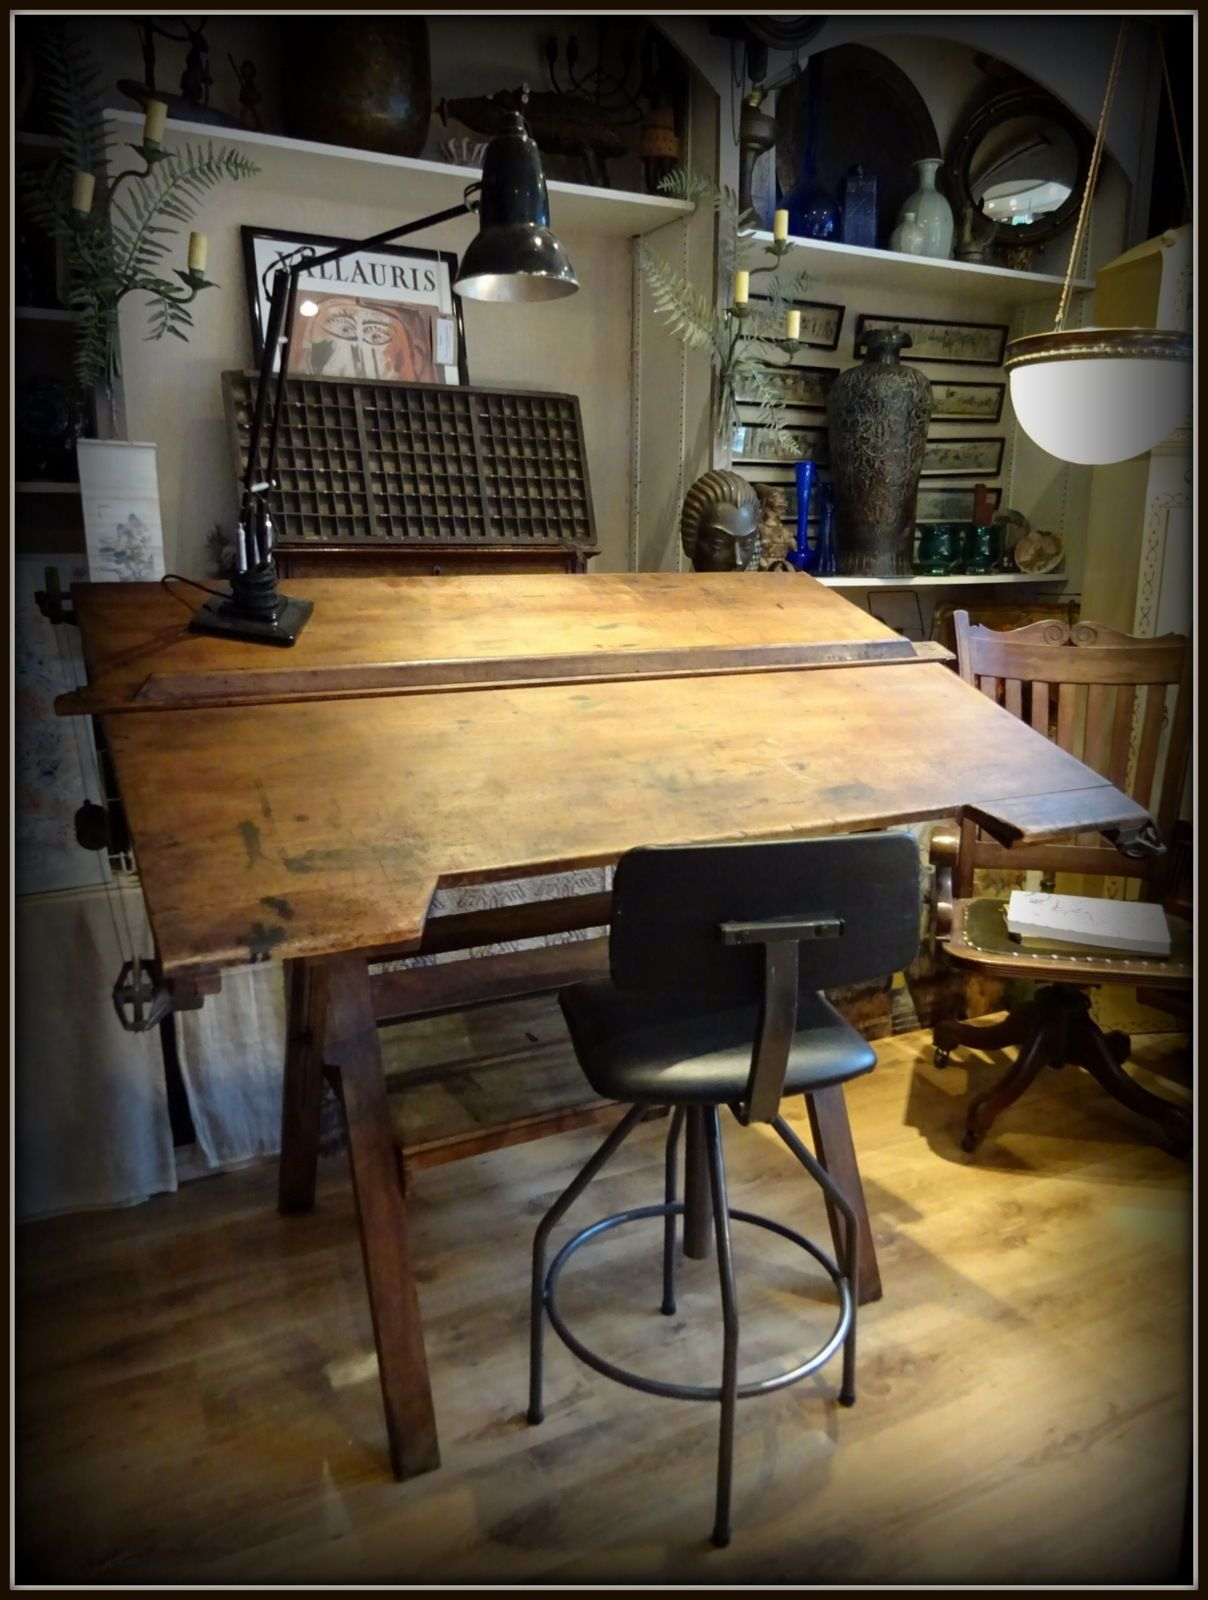 20Th Century Architects antique early 20th century architects drafting drawing board desk